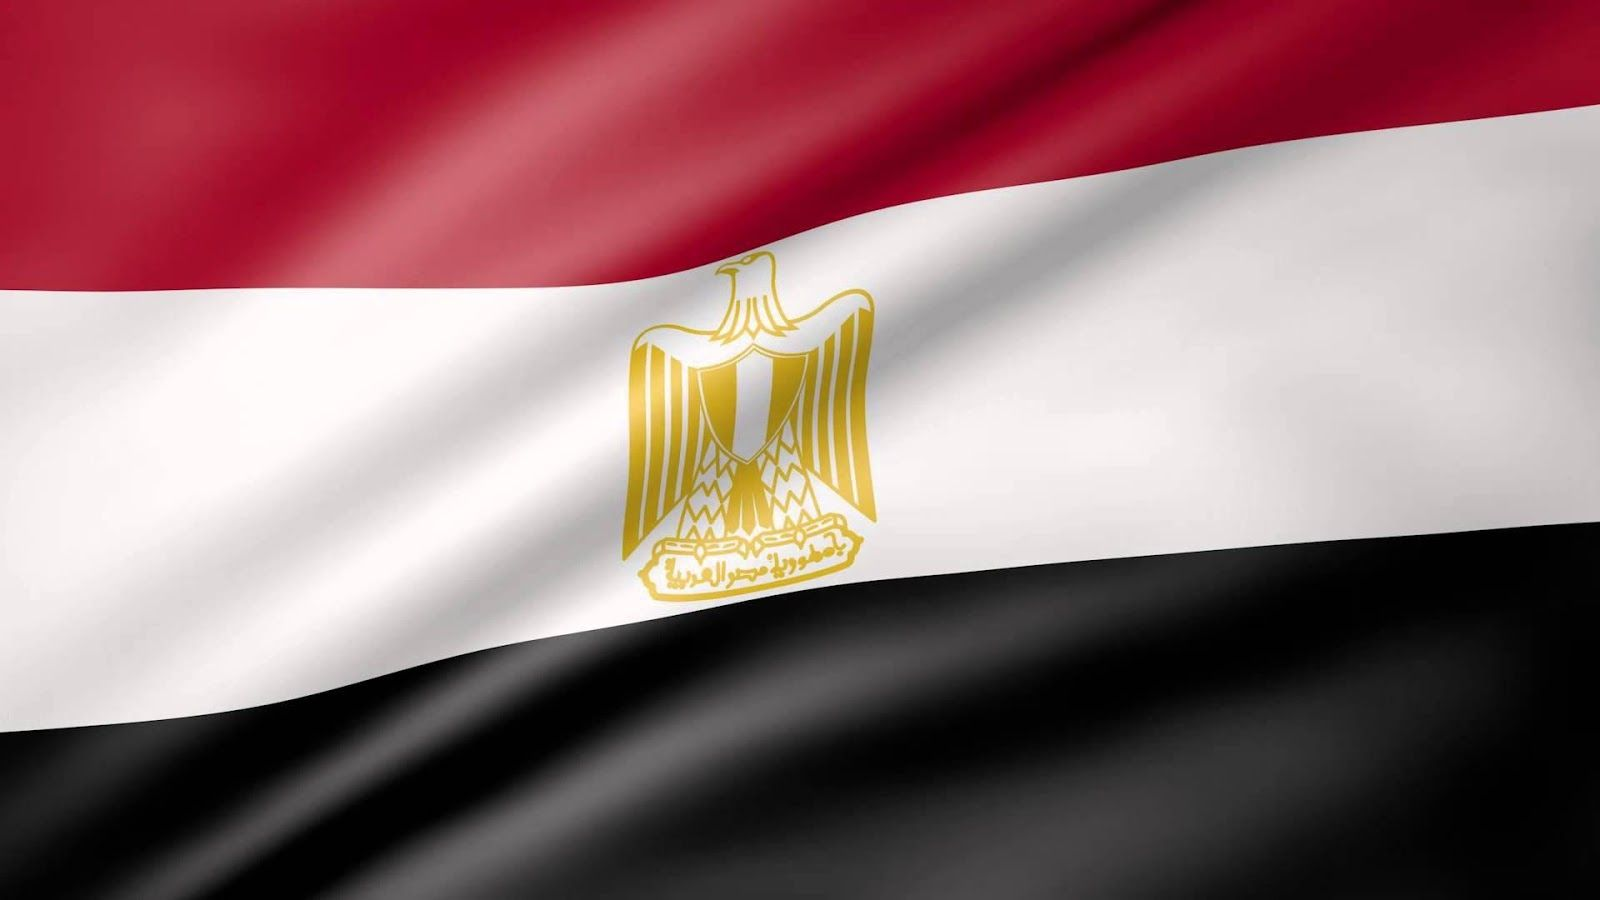 1600x900 Egypt Flag Wallpapers - Android Apps on Google Play